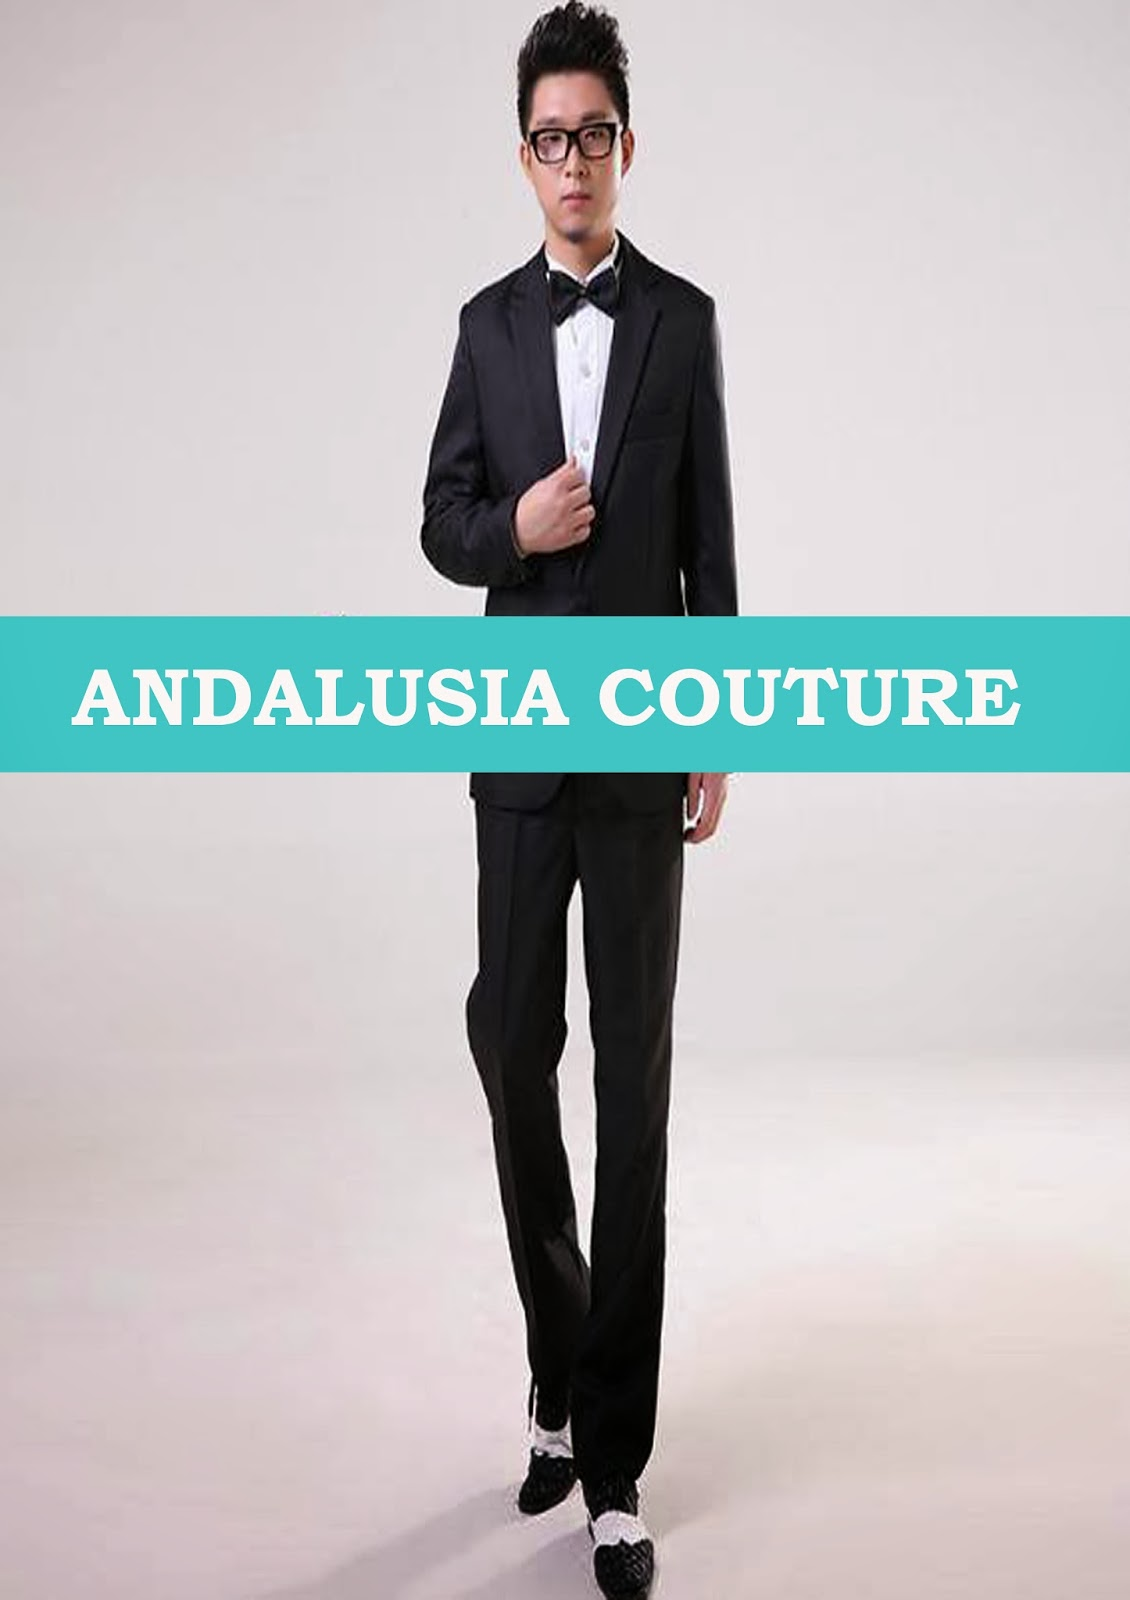 ANDALUSIA COUTURE: ANDALUSIA COUTURE WEDDING PACKAGE D RM3999